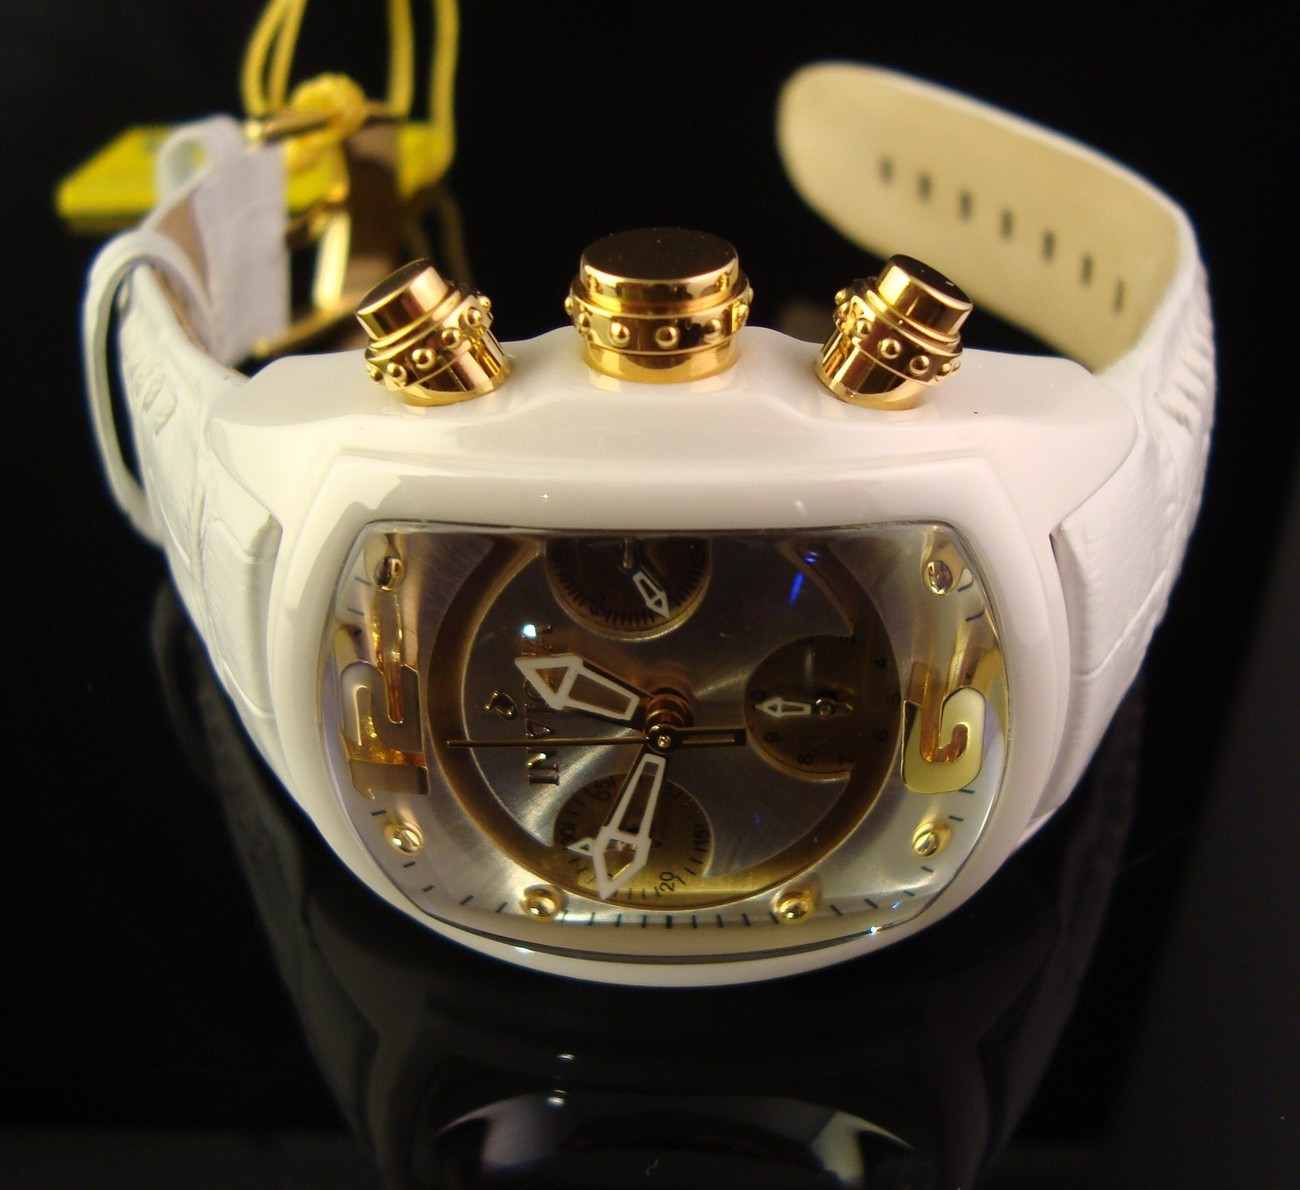 NEW WOMENS LUPAH REVOLUTION CHRONO -WHITE M.O.P. DIAL WITH GOLD TONE ACCENTS